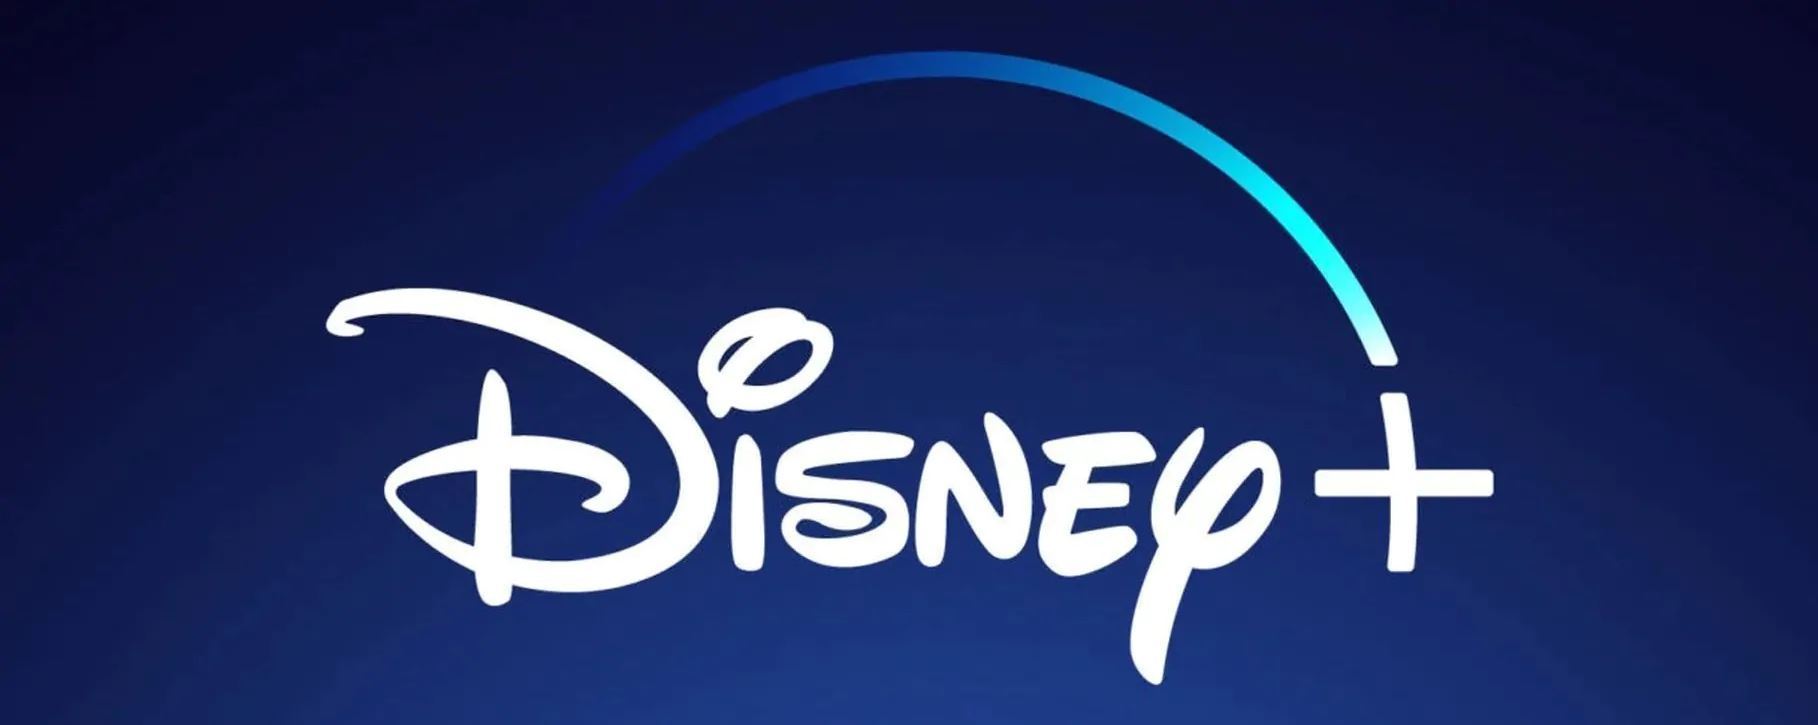 Disney+ to Lower Overall Bandwidth Utilization for Disney+ in Europe